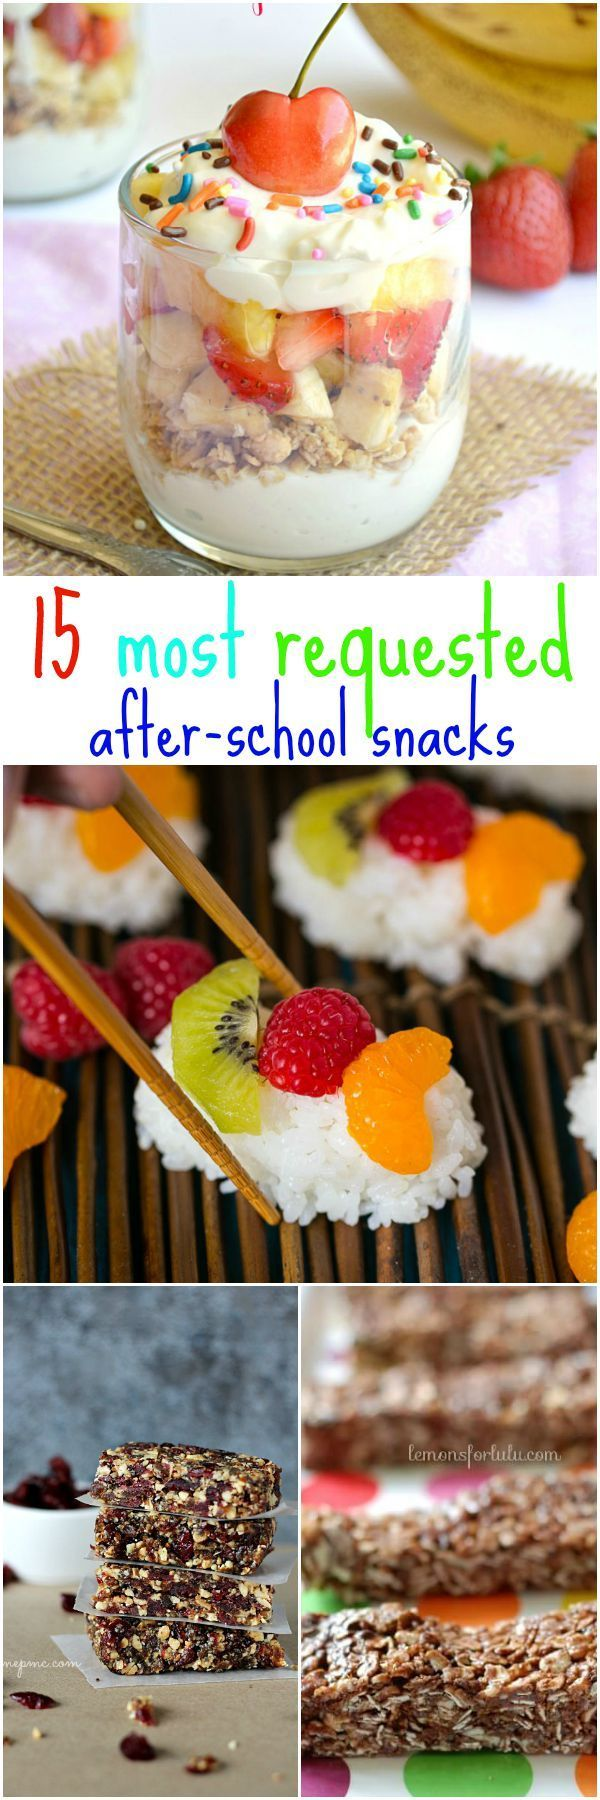 15 Most Requested After School Snacks from Community Table Parade.